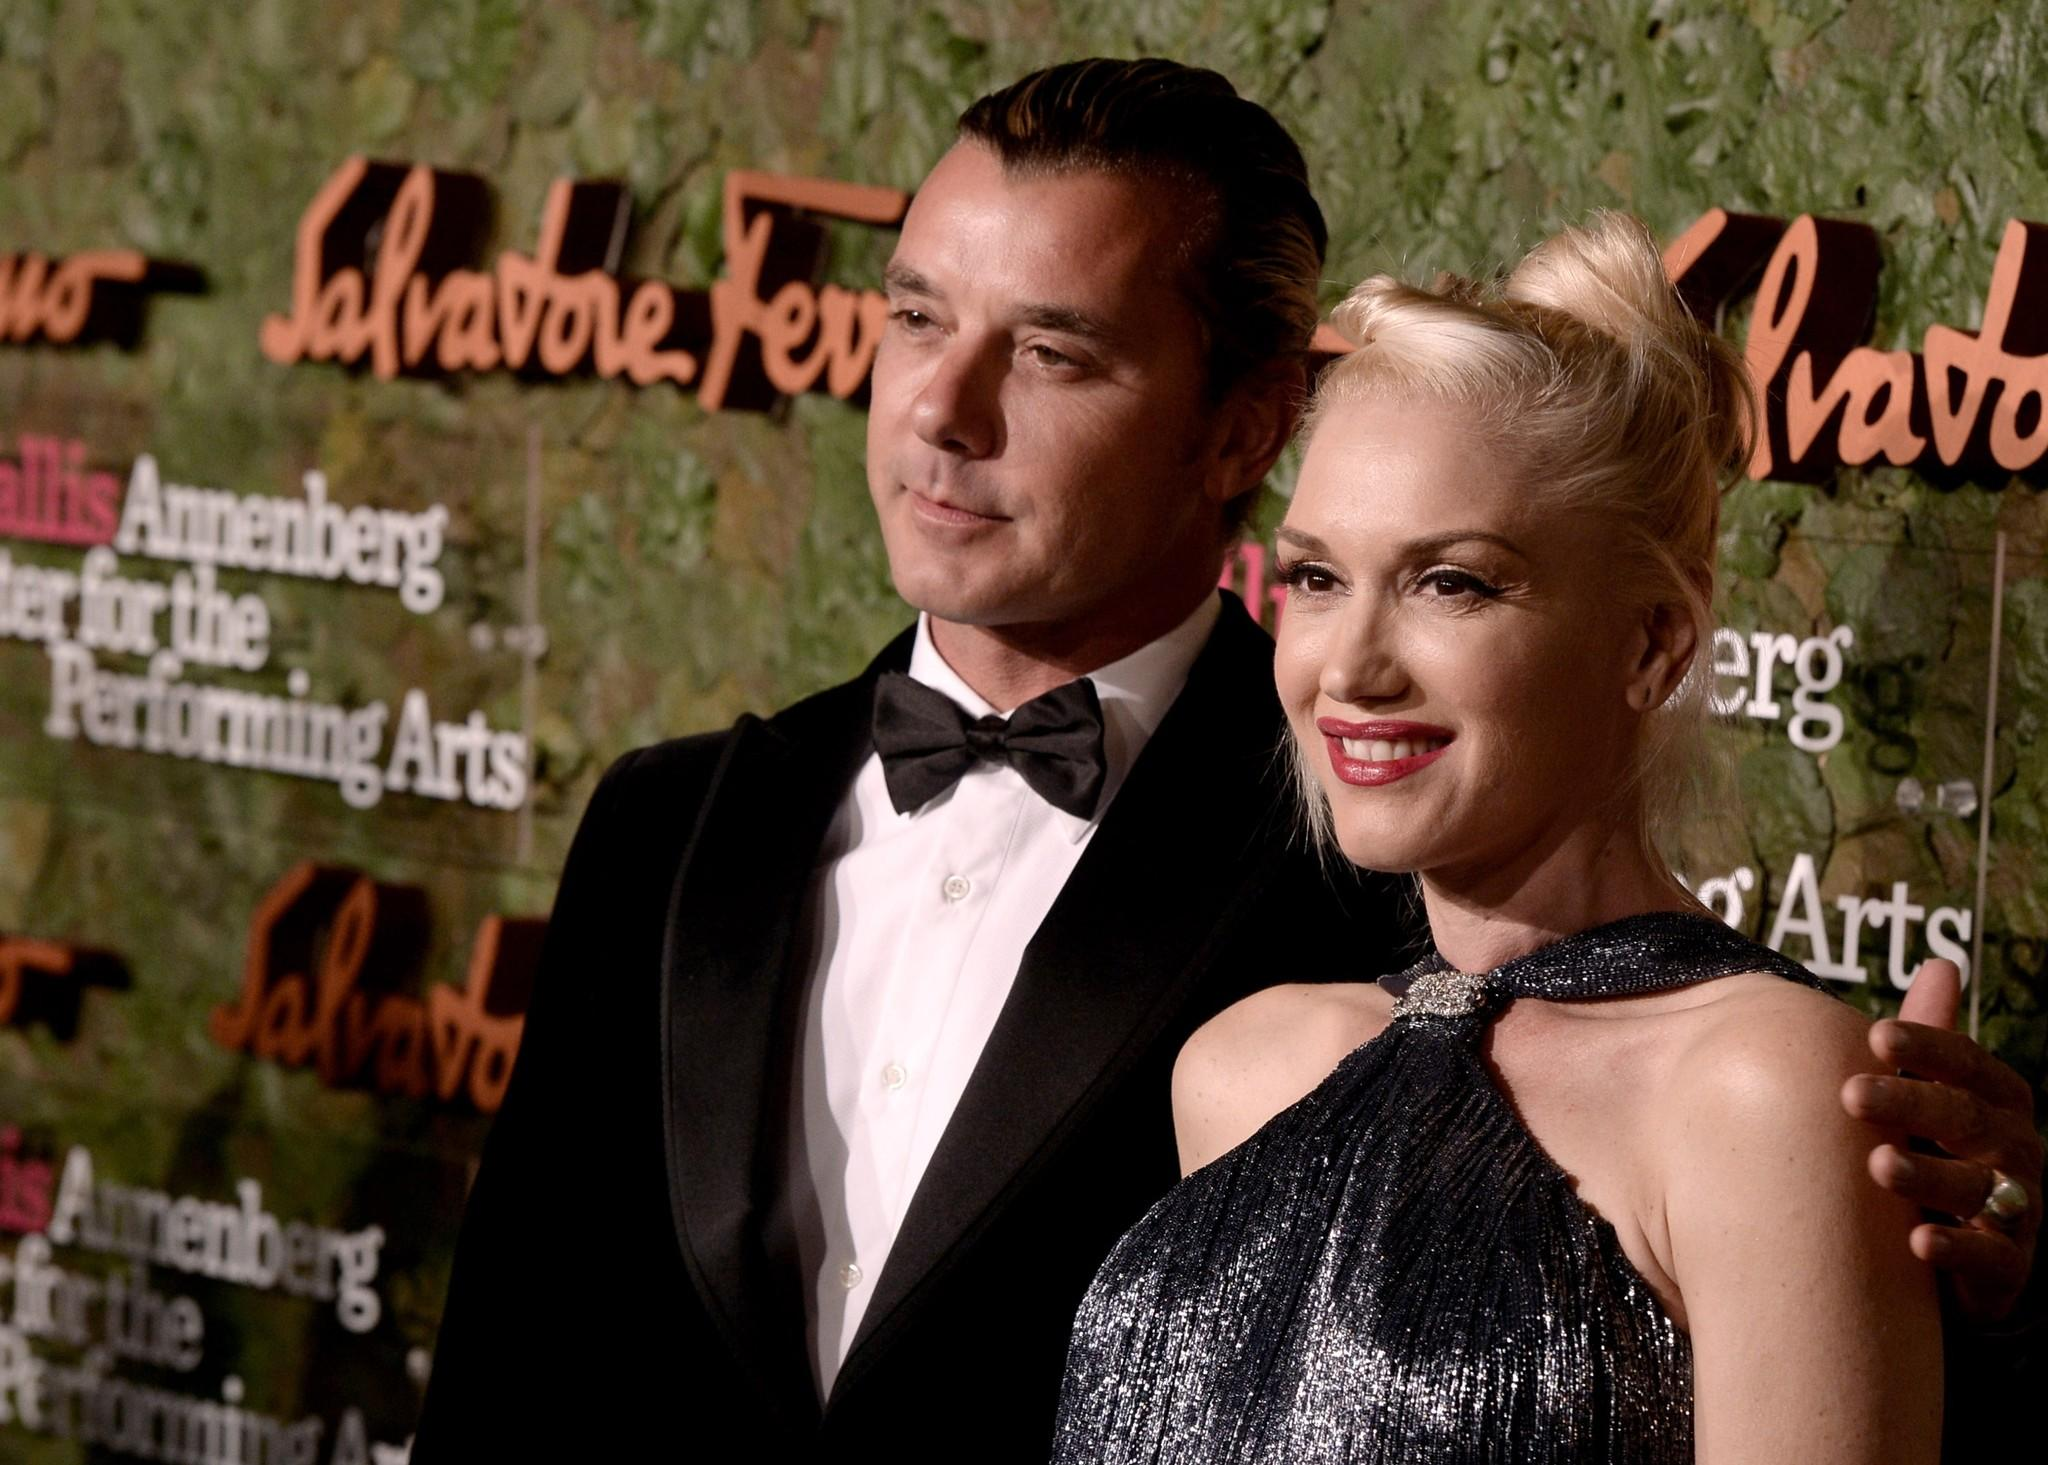 Gavin Rossdale and Gwen Stefani now have three boys together.